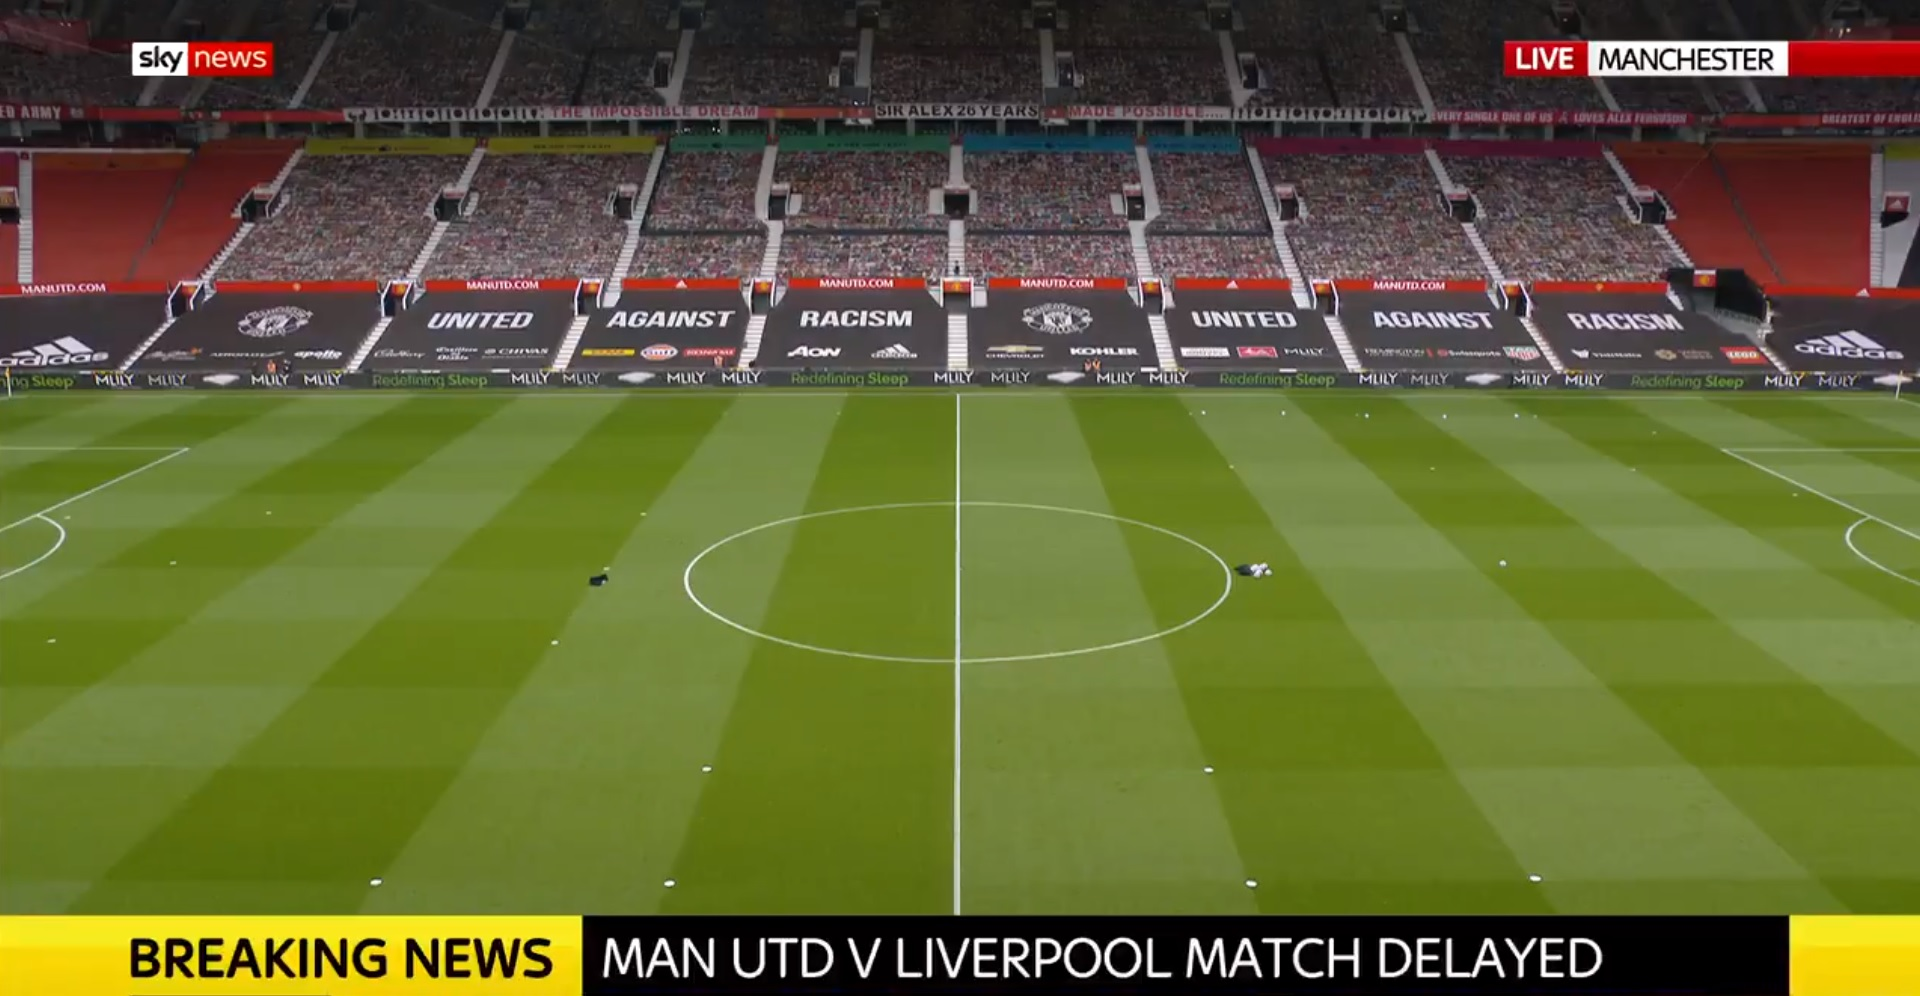 Liverpool v Manchester United clash delayed 'on safety grounds'